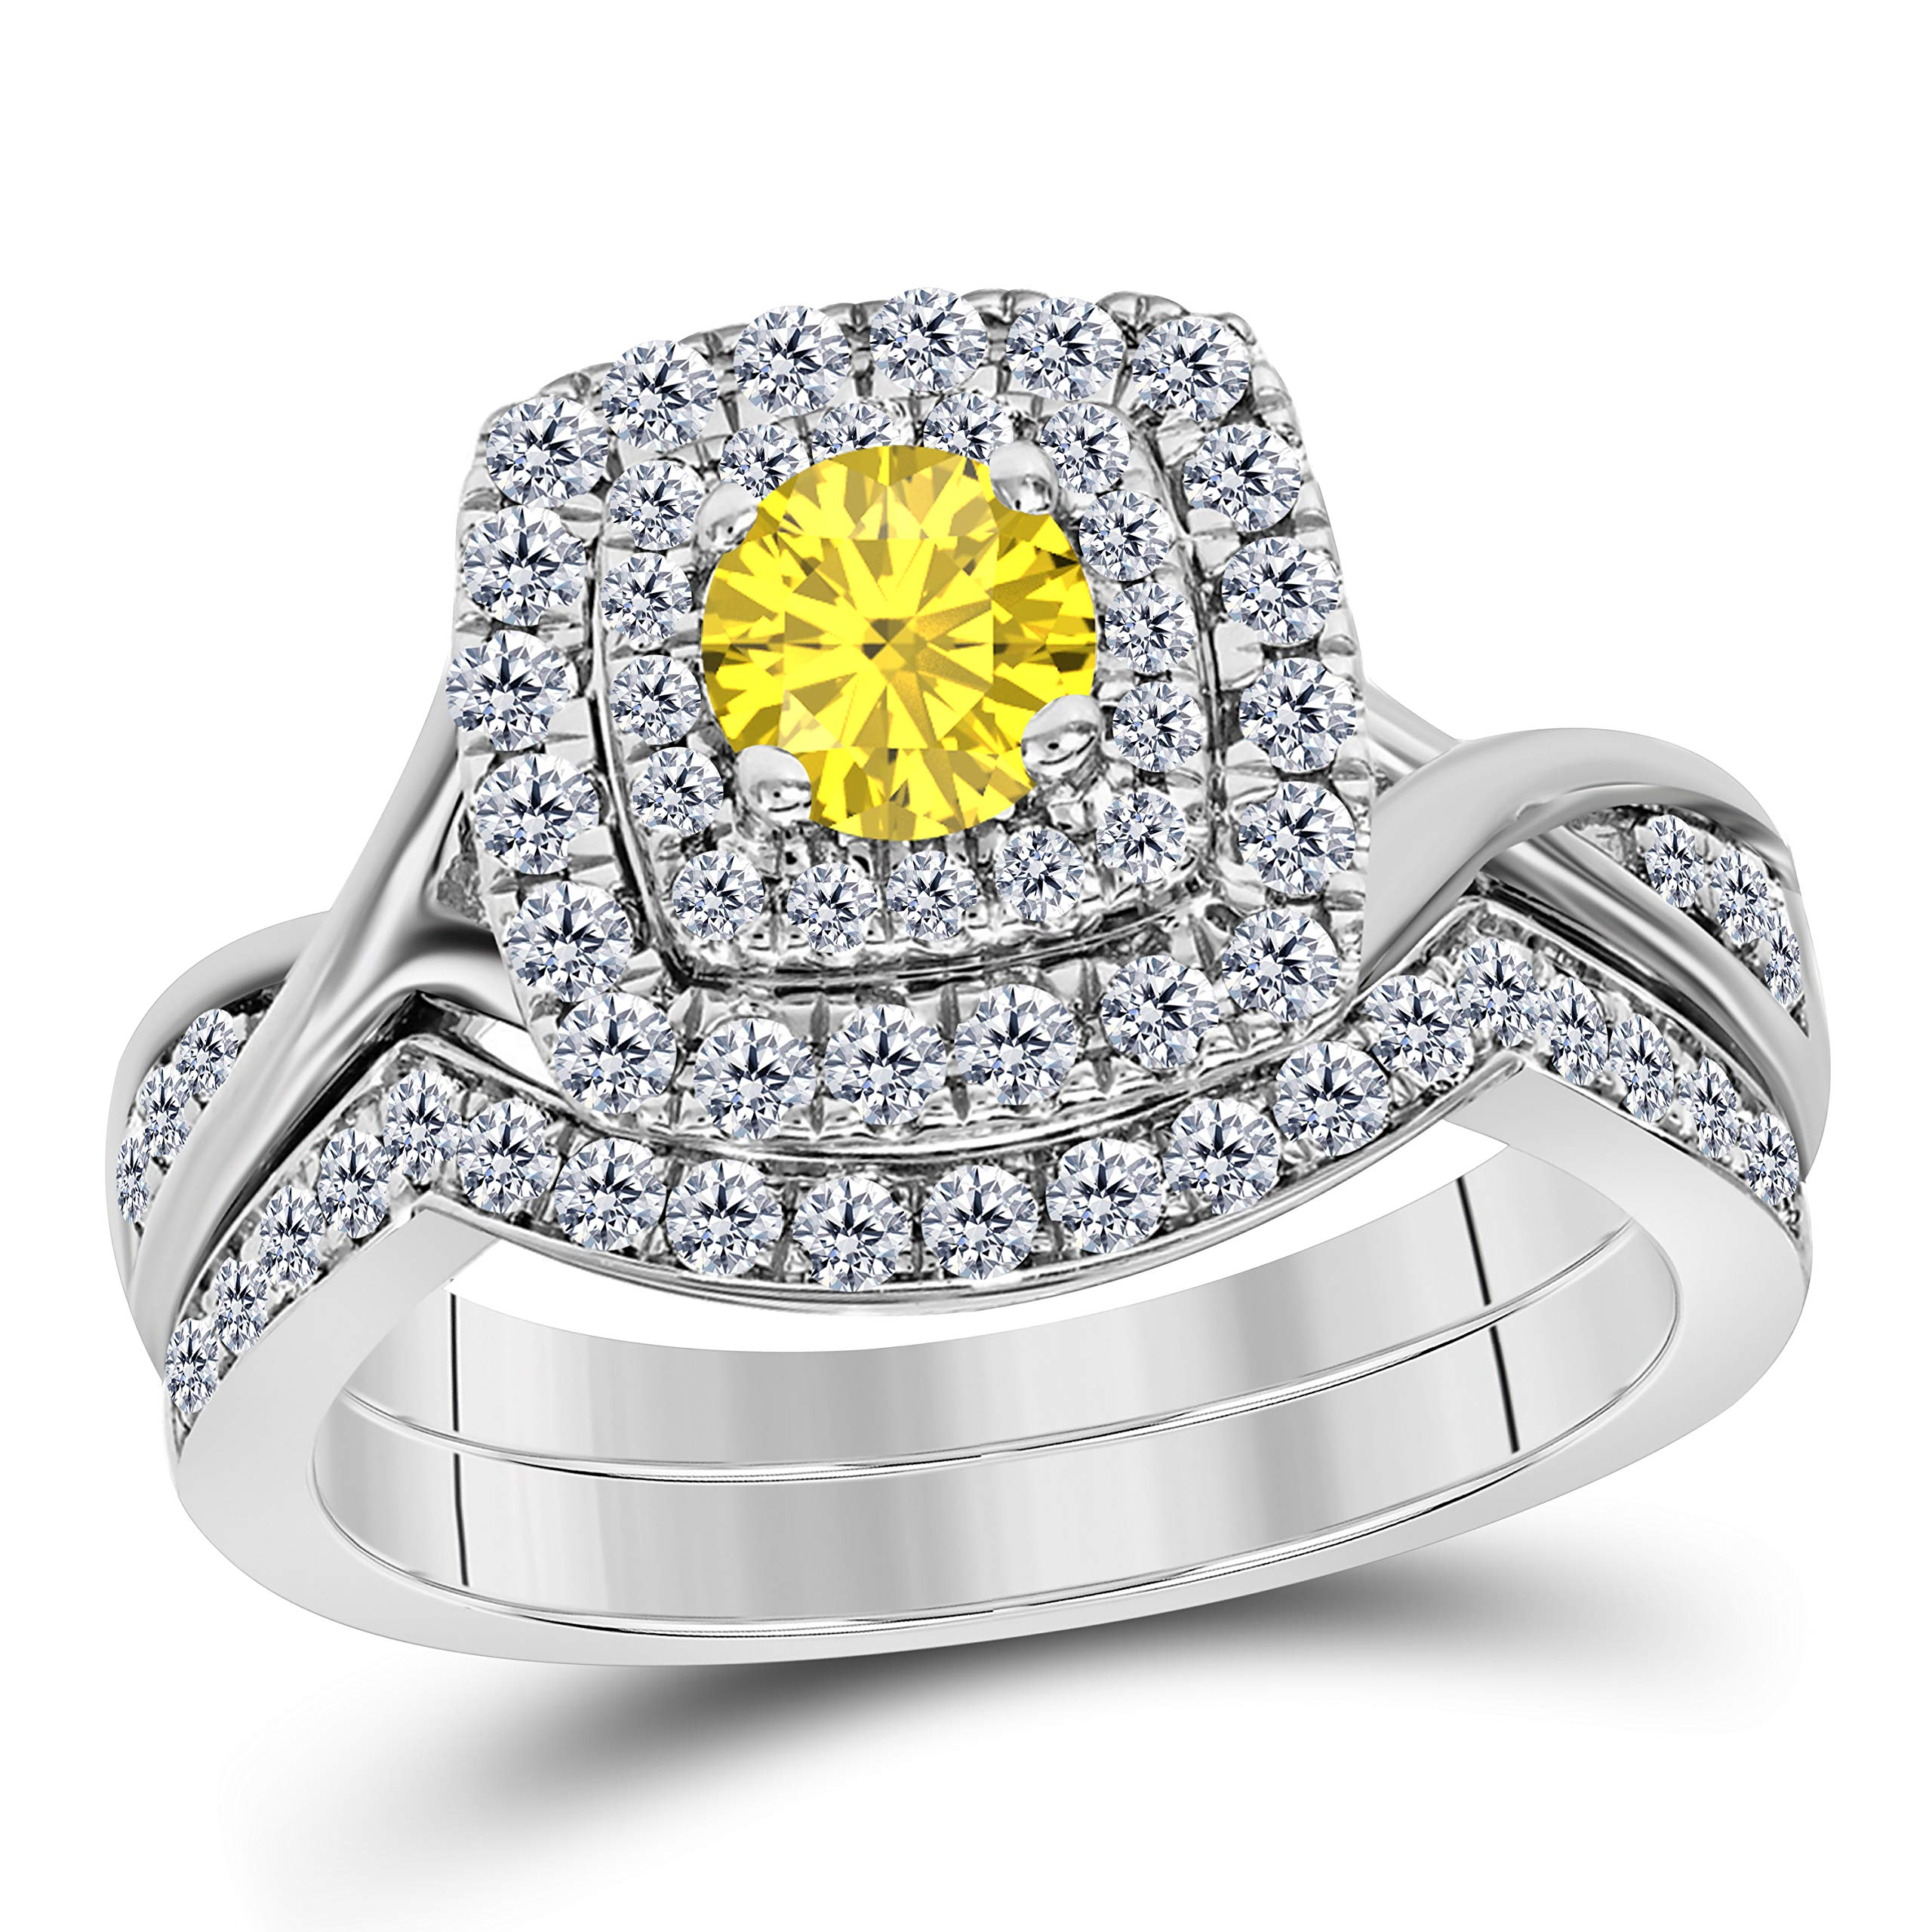 d4bc5347c41 Gems and Jewels Women's 14k Gold Plated Alloy 1.00 Ct Round CZ  Yellow-Sapphire & Cubic Zirconia Curved Wedding Band Split Shank Dubbel  Halo Bridal ...